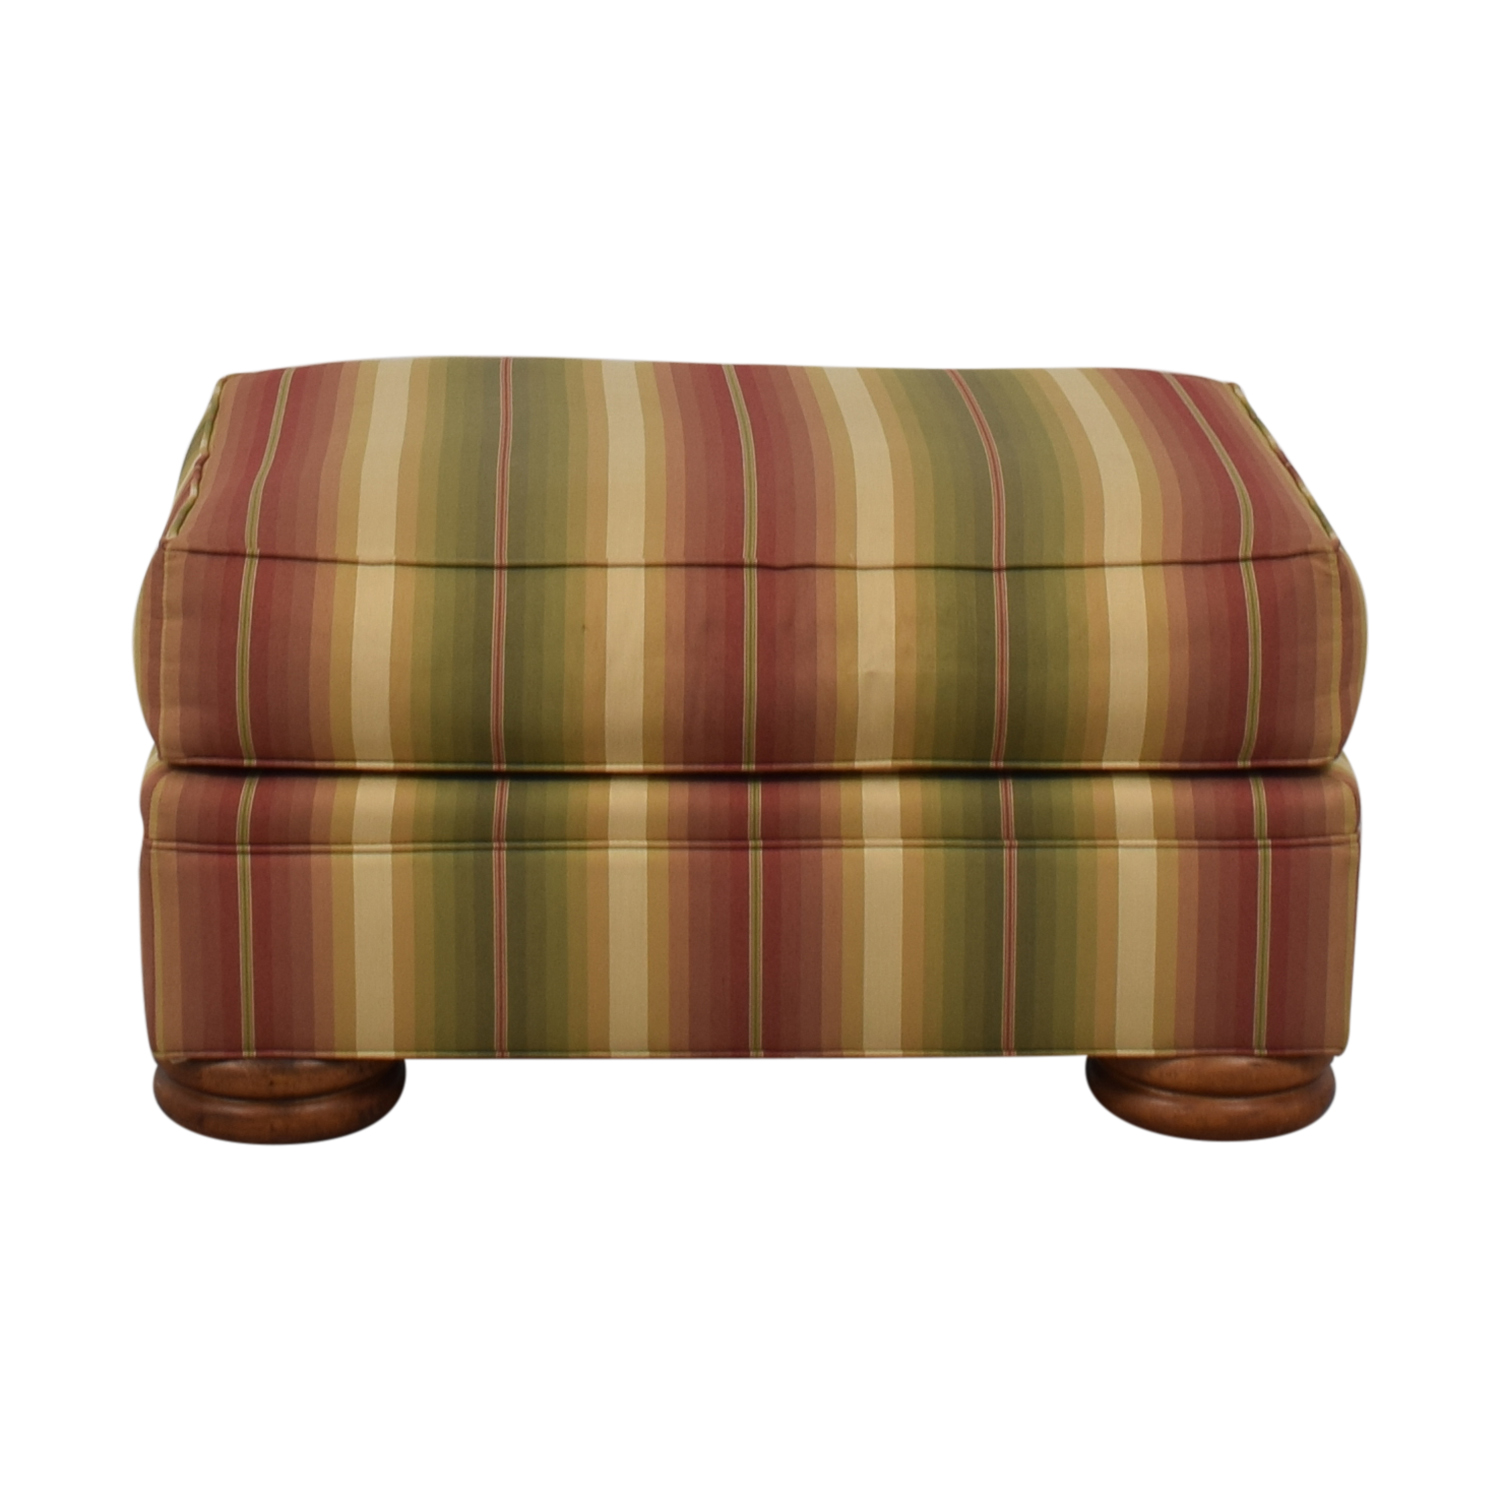 shop Thomasville Thomasville Striped Ottoman online